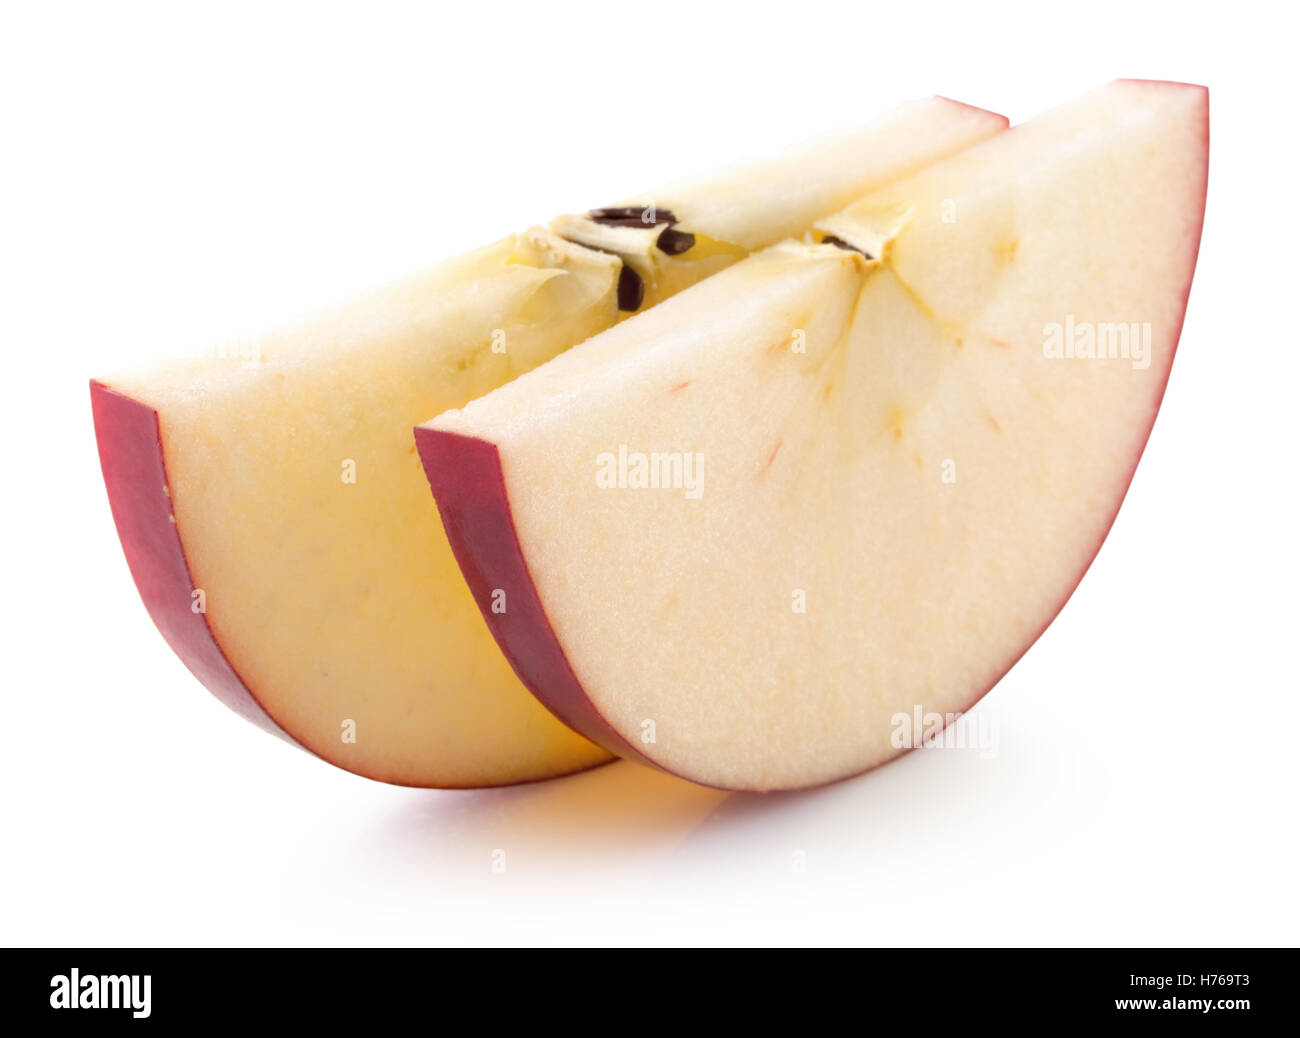 red apple slices isolated on the white background. - Stock Image